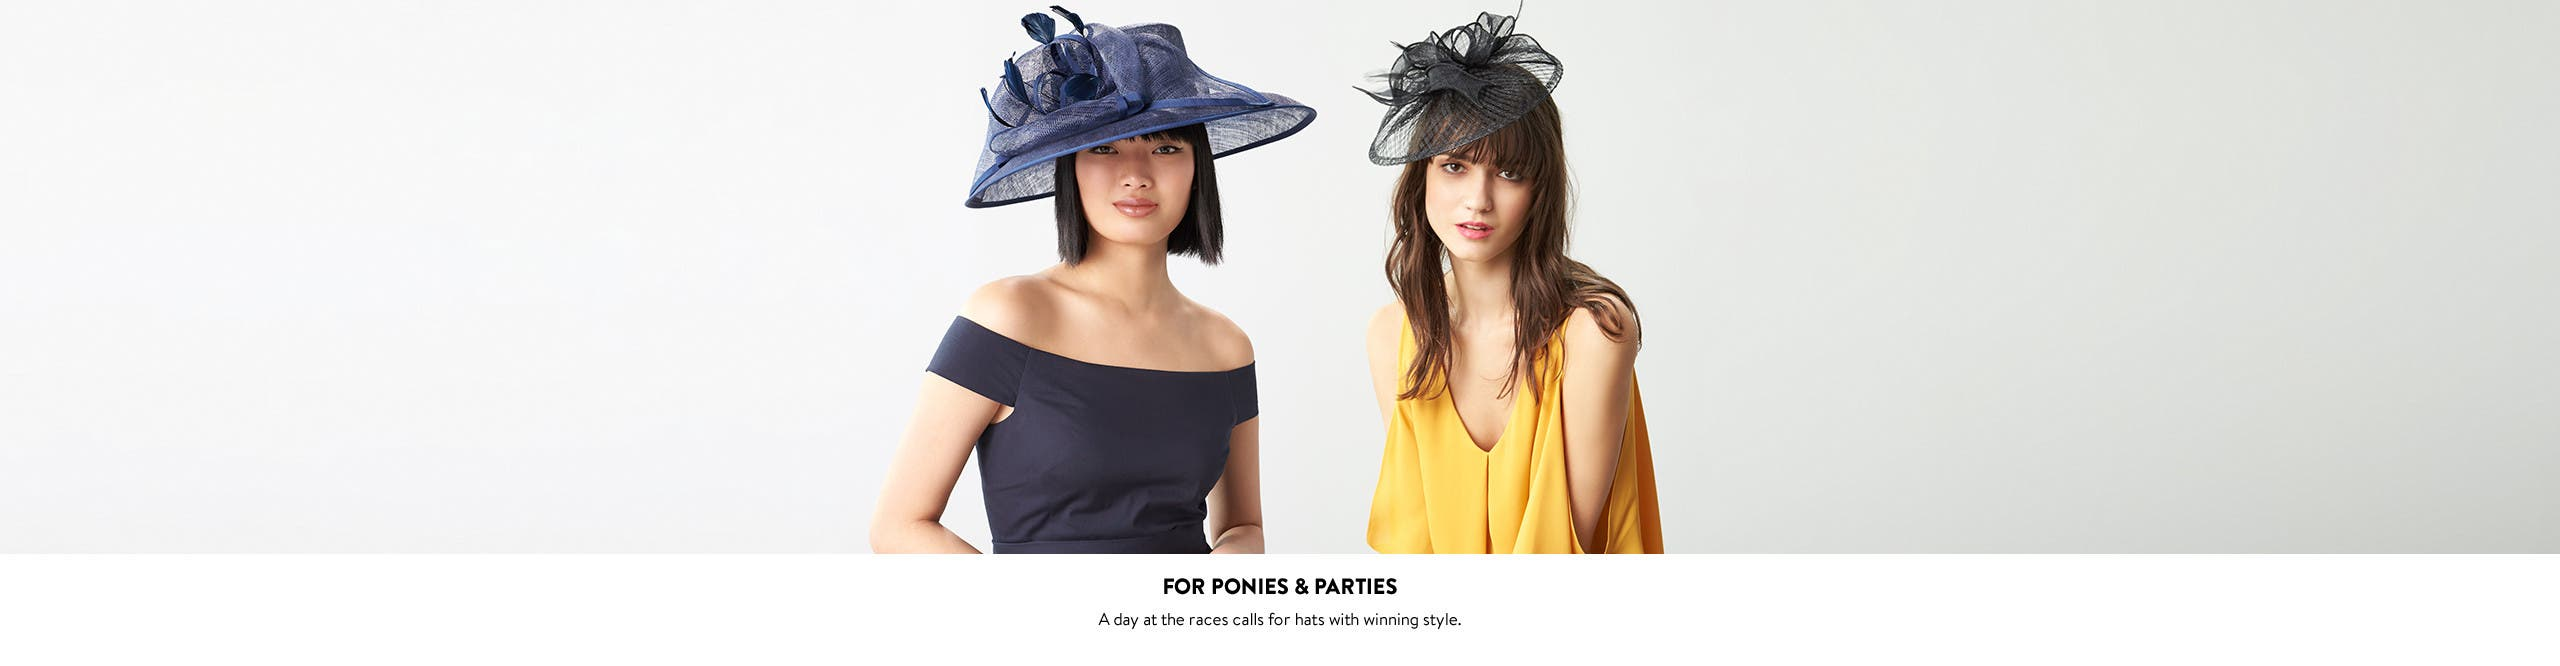 For ponies and parties: hats.